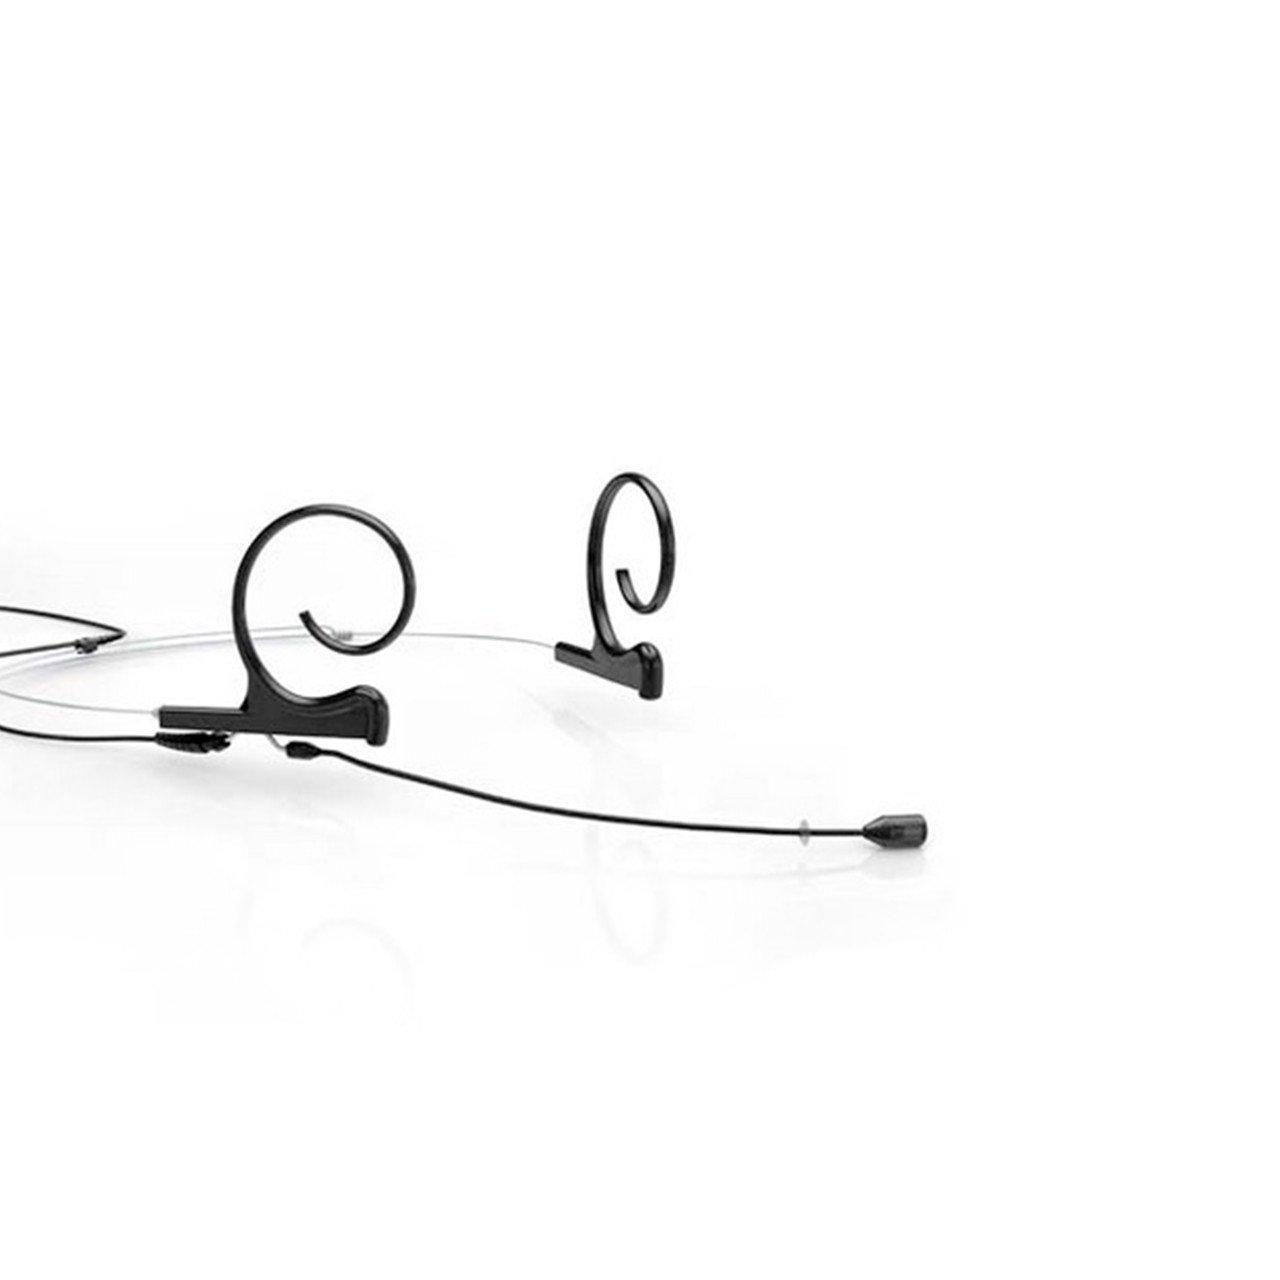 Headset Microphones - DPA D:fine 88 Dual-ear Directional Headset Microphone